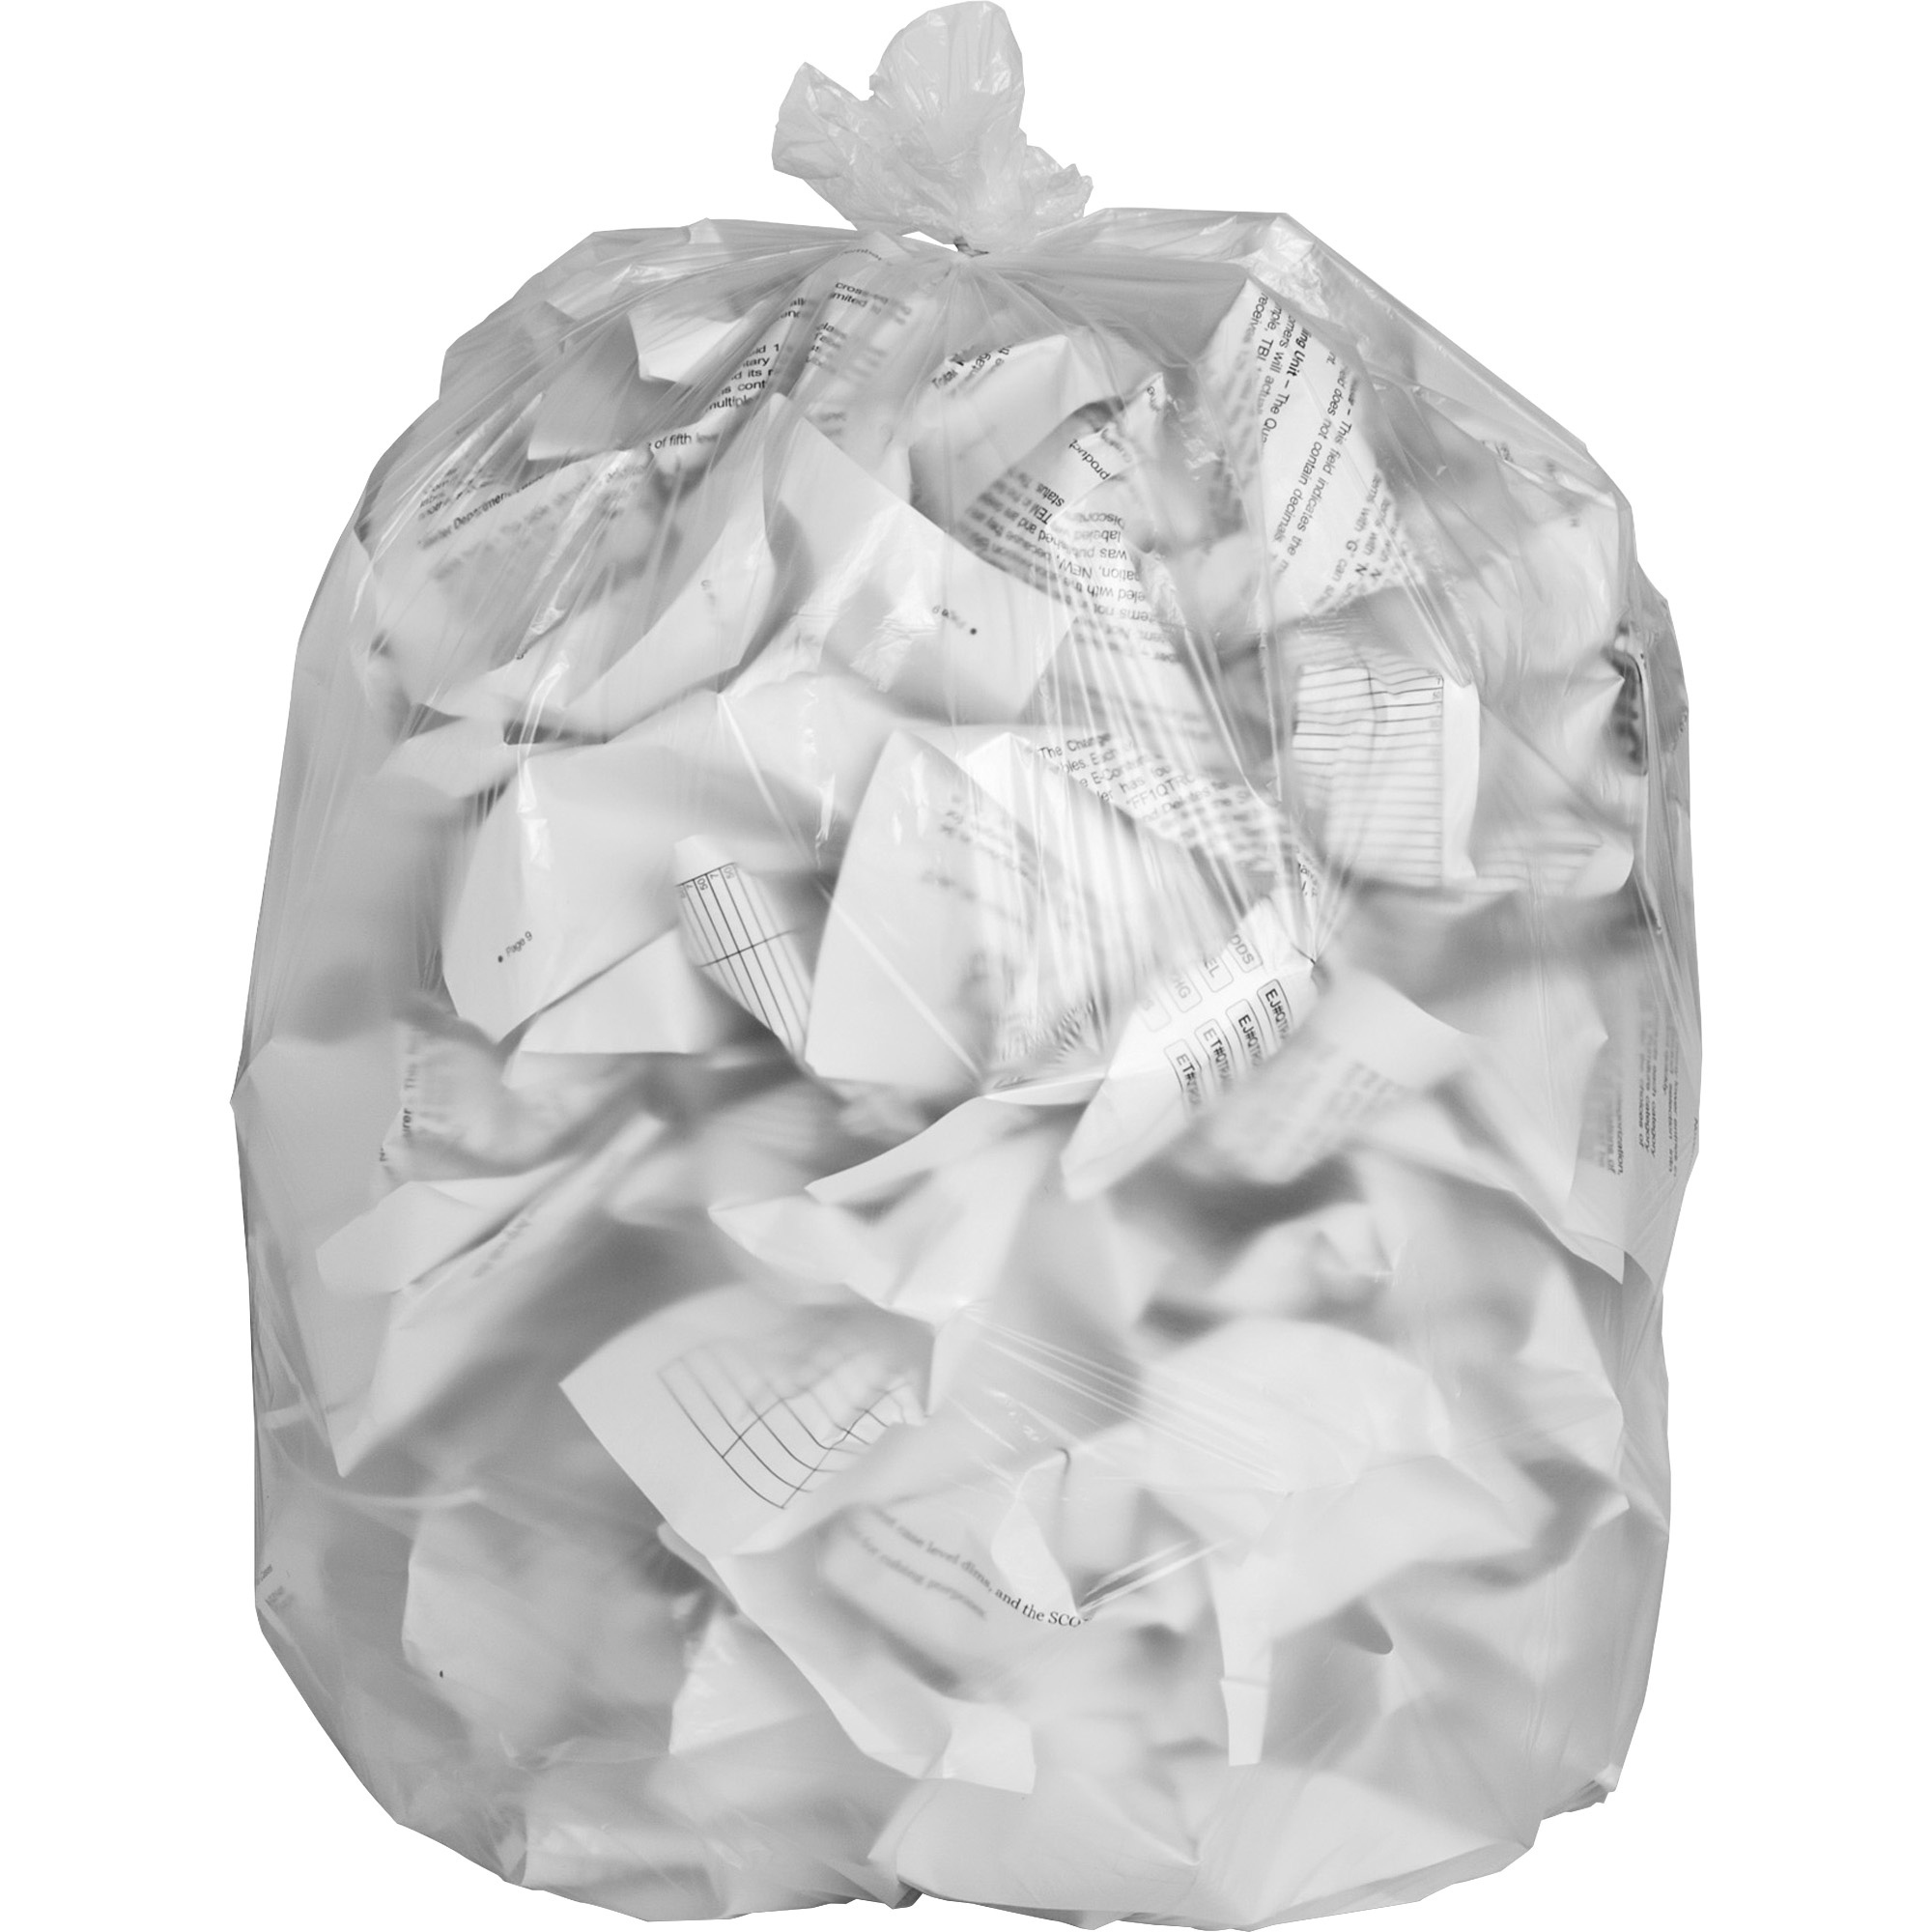 Special Buy, SPZHD242408, High-density Resin Trash Bags, 1000 / Carton, Clear, 10 gal